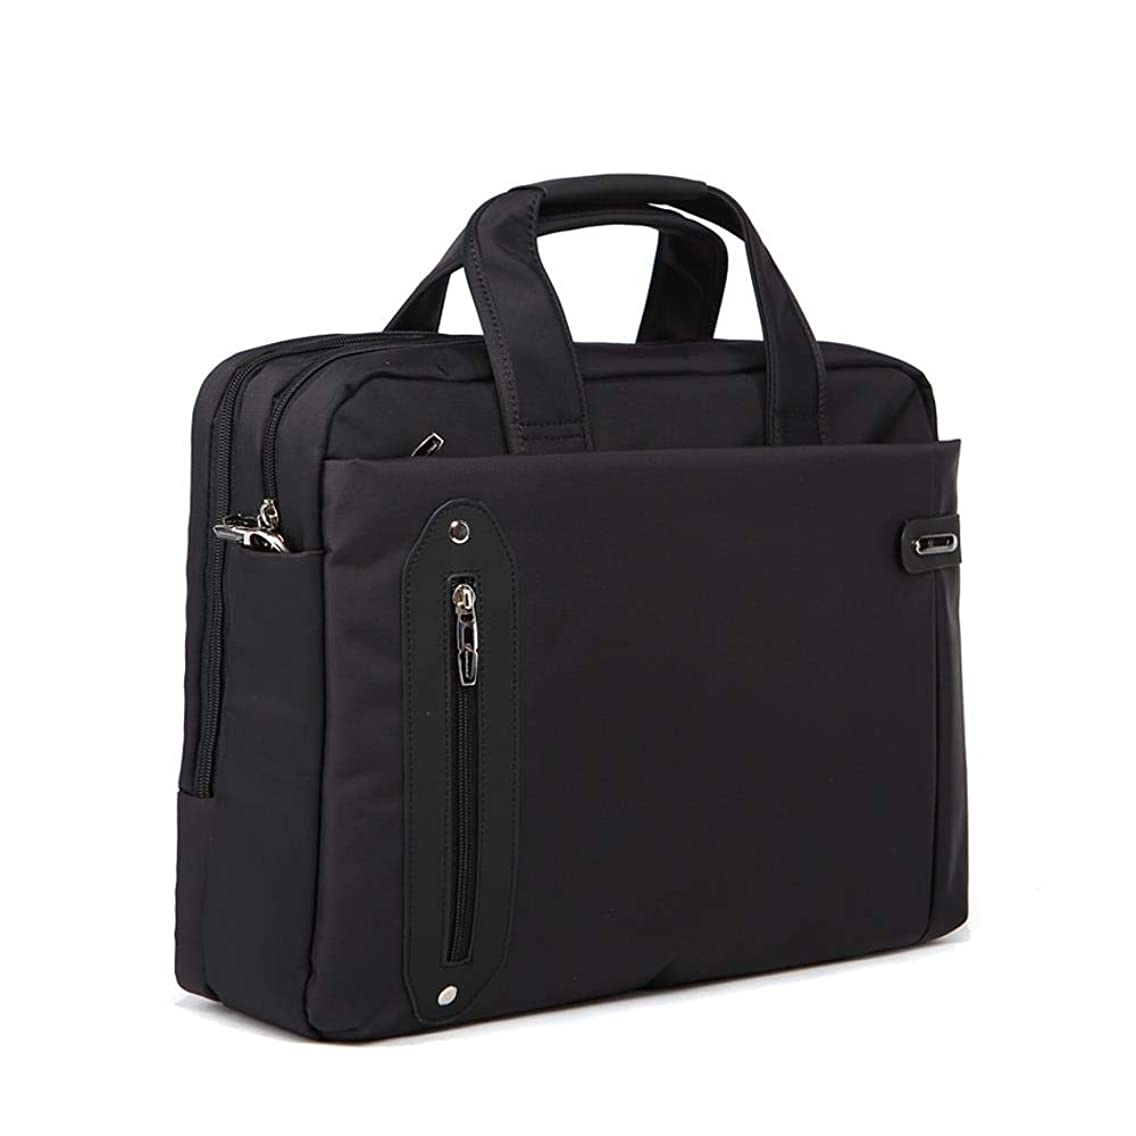 Coffee laptop bag 15. 6jingdianzuanshi briefcase men's black (black)